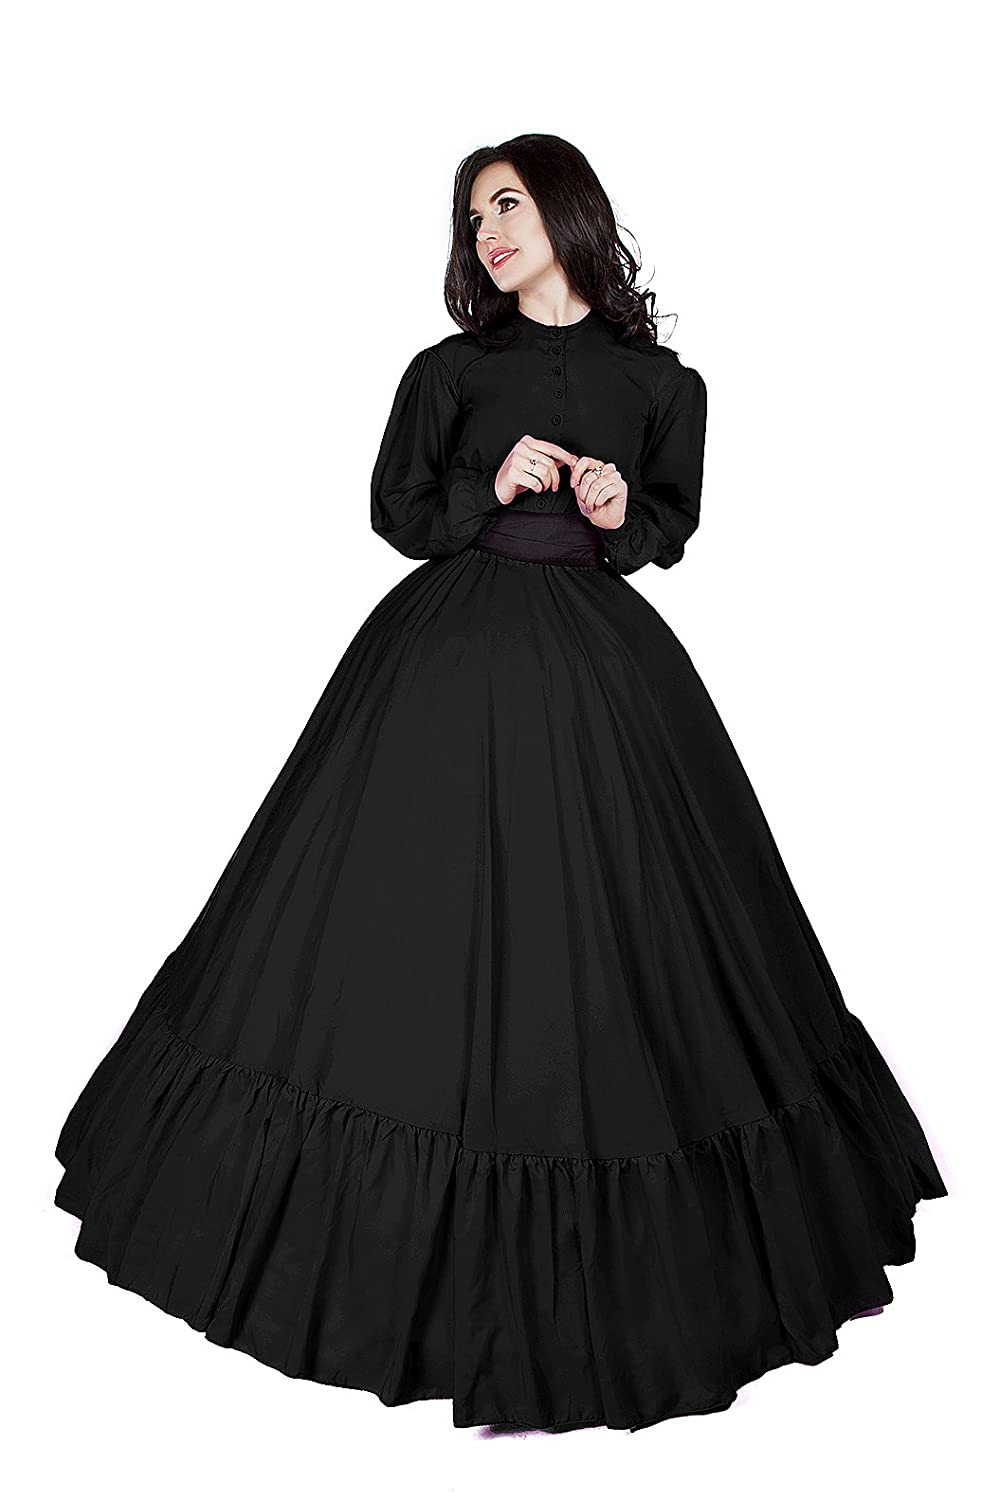 Victorian Dresses | Victorian Ballgowns | Victorian Clothing 1860 Civil War Reenactment Victorian Garibaldi 3 Piece Dress $89.99 AT vintagedancer.com